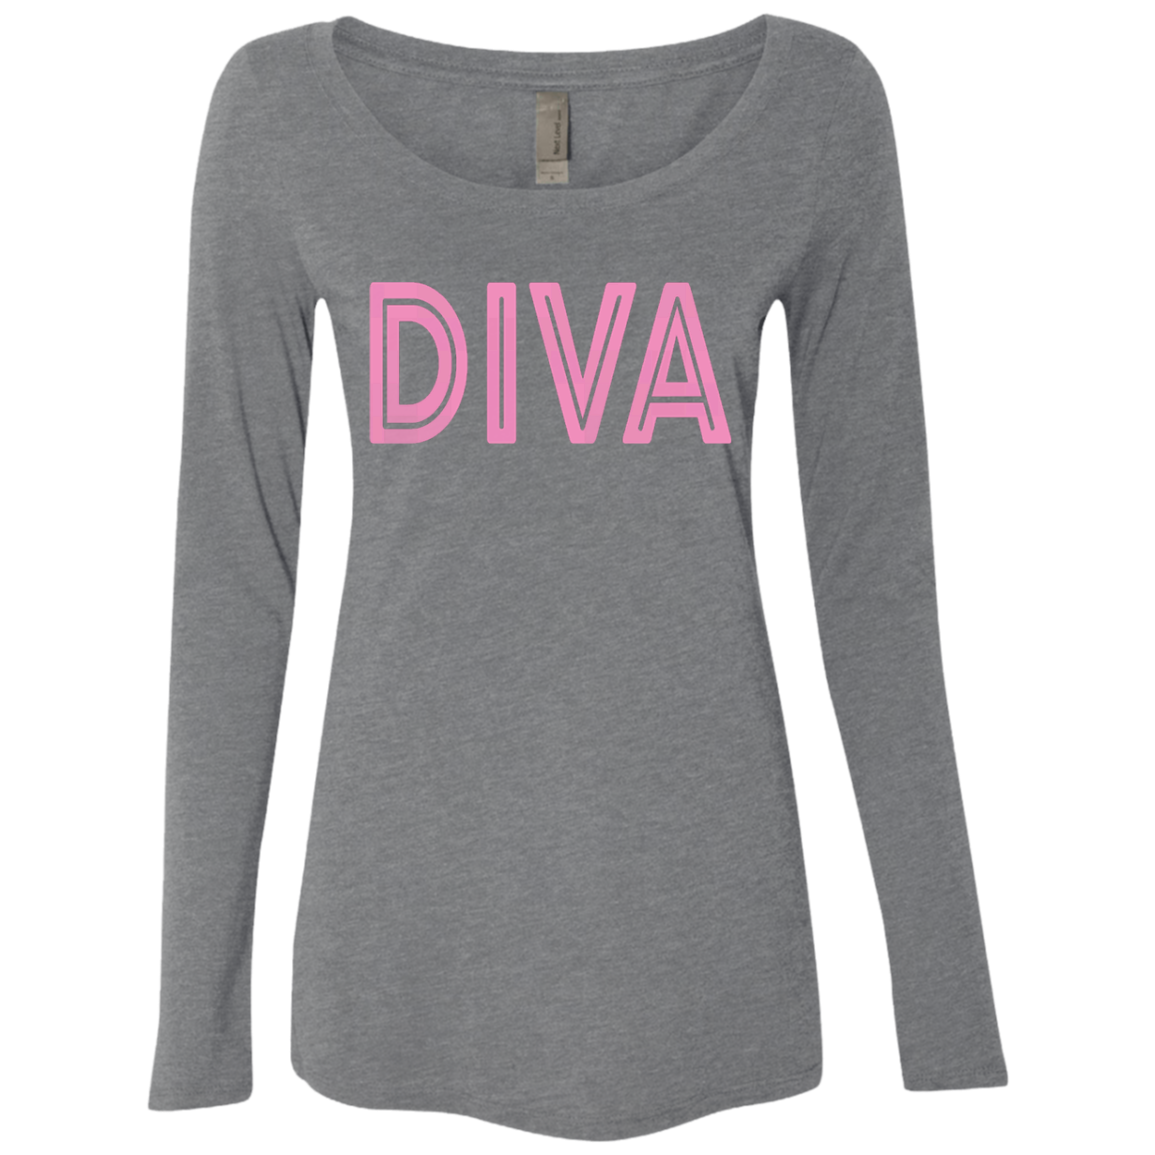 Diva Women's Long Sleeve Tee